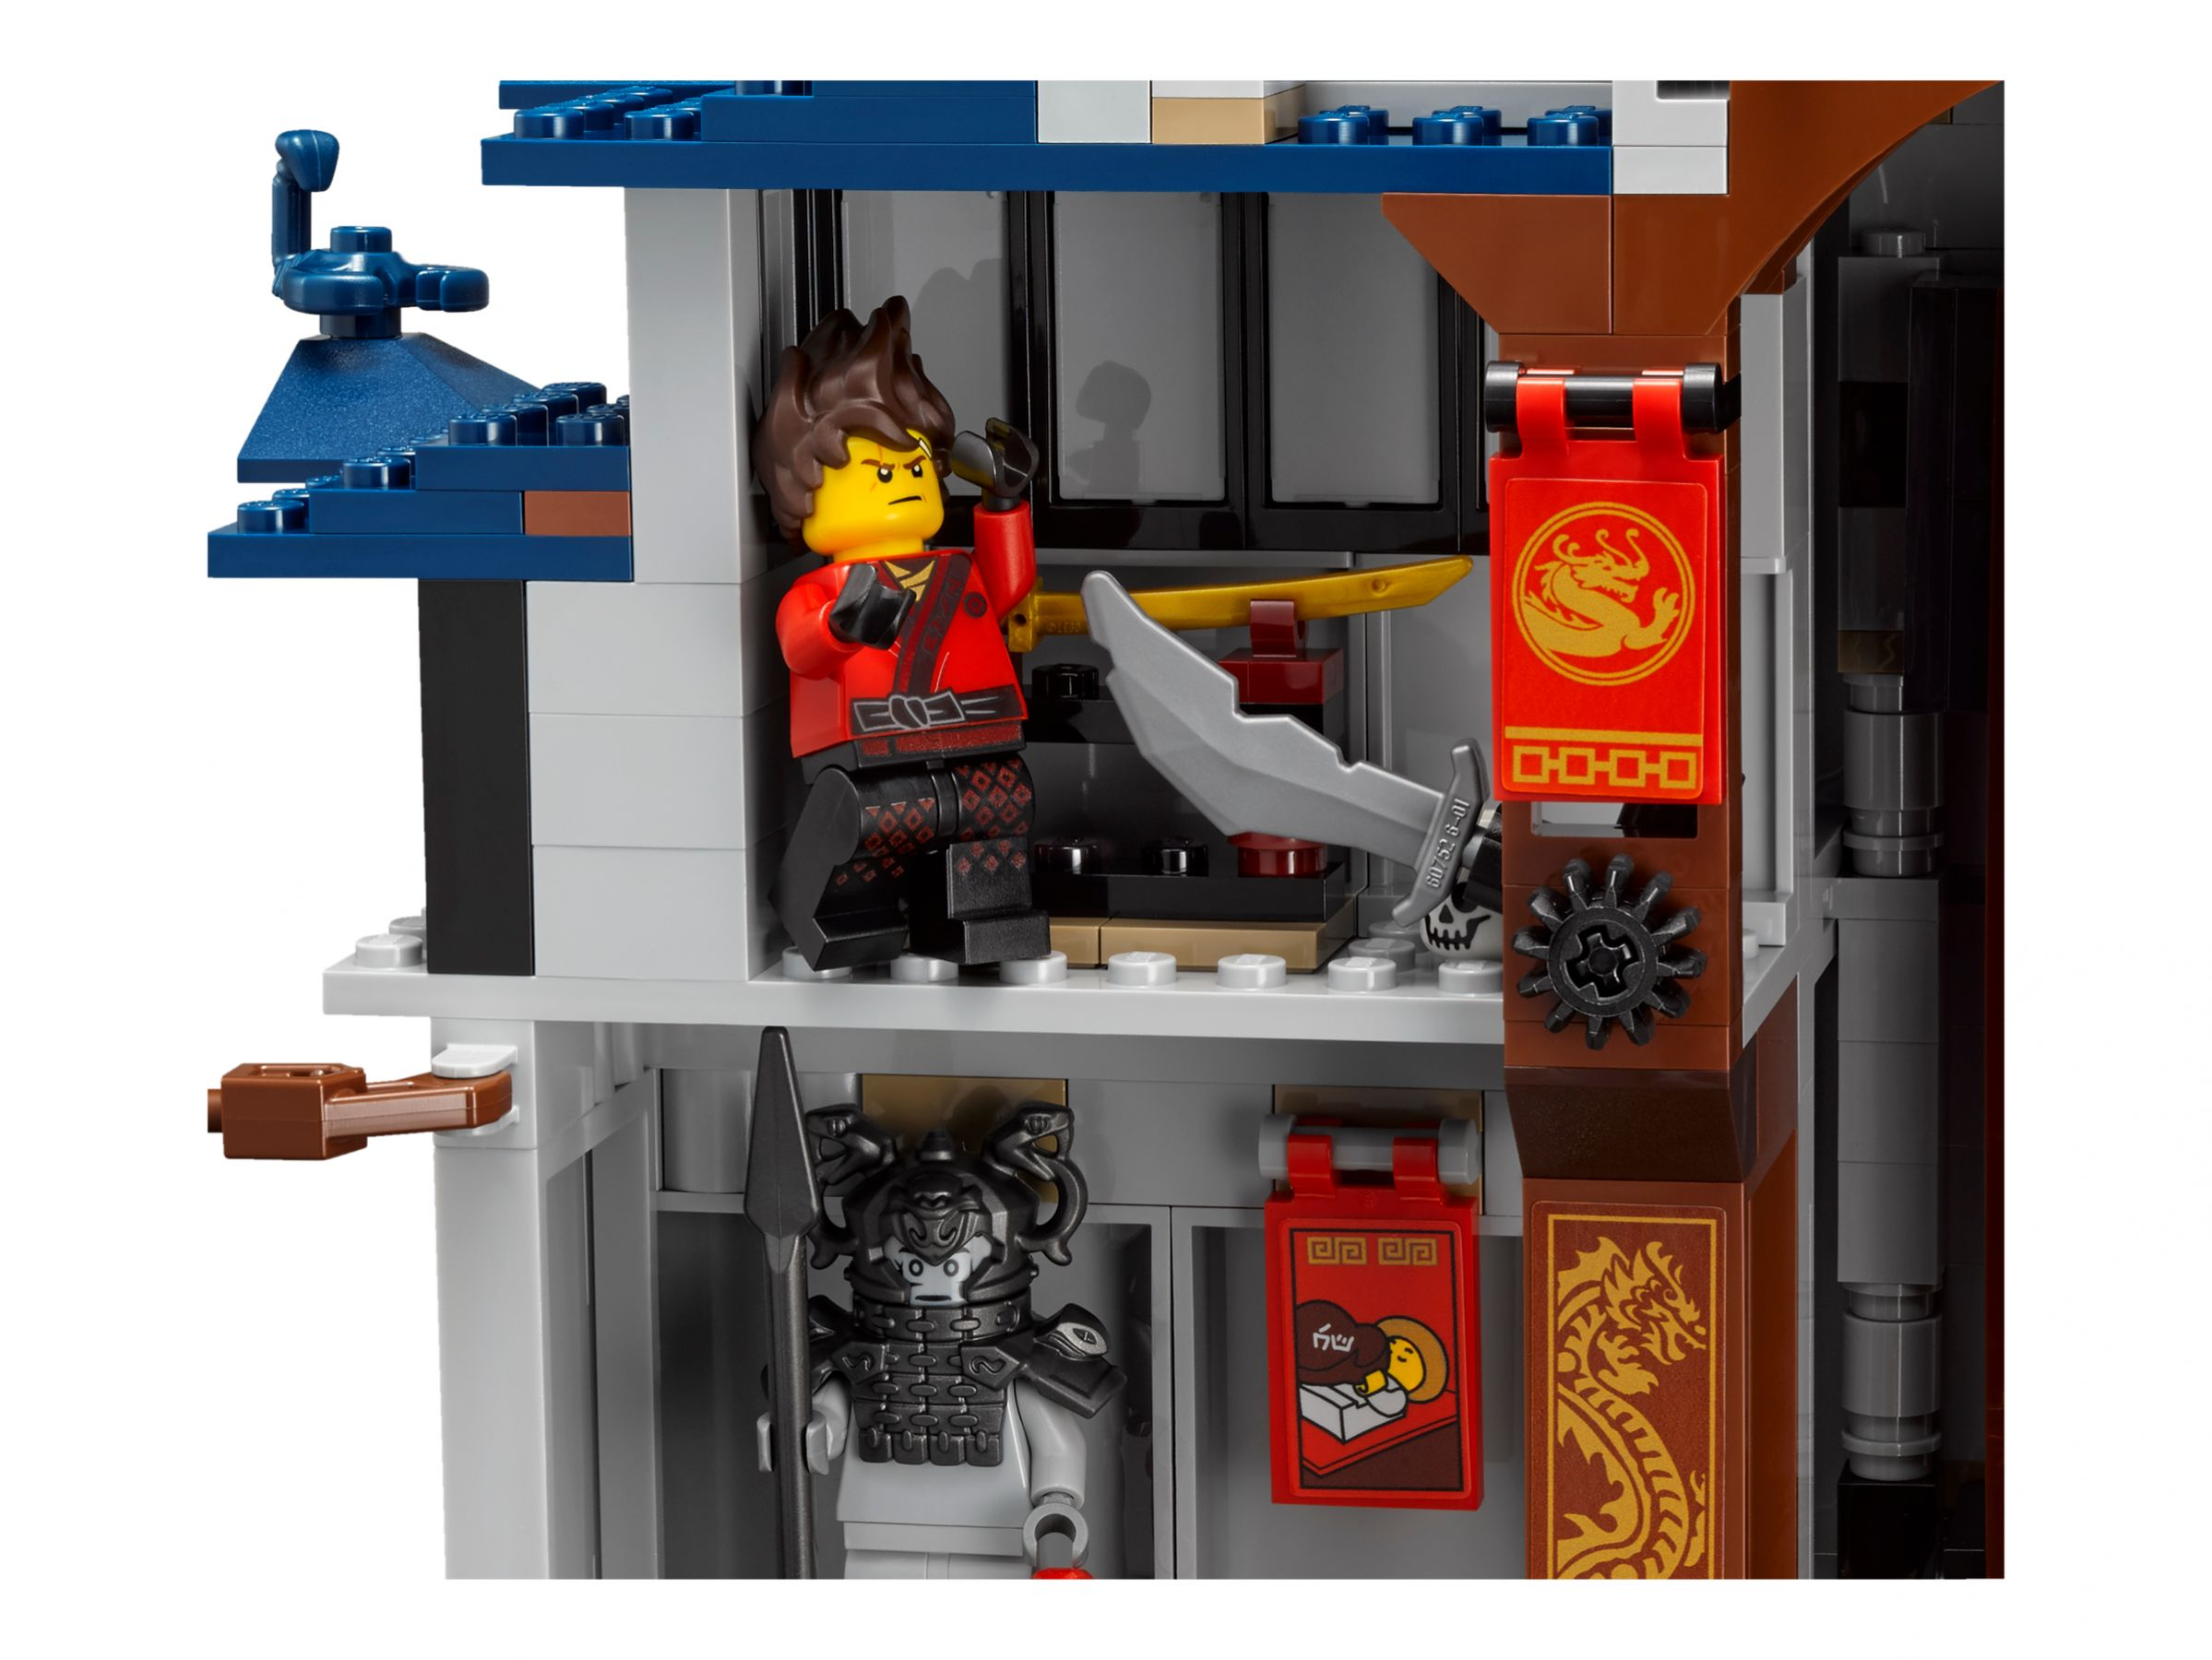 LEGO The LEGO Ninjago Movie 70617 Ultimativ ultimatives Tempel-Versteck LEGO_70617_alt9.jpg